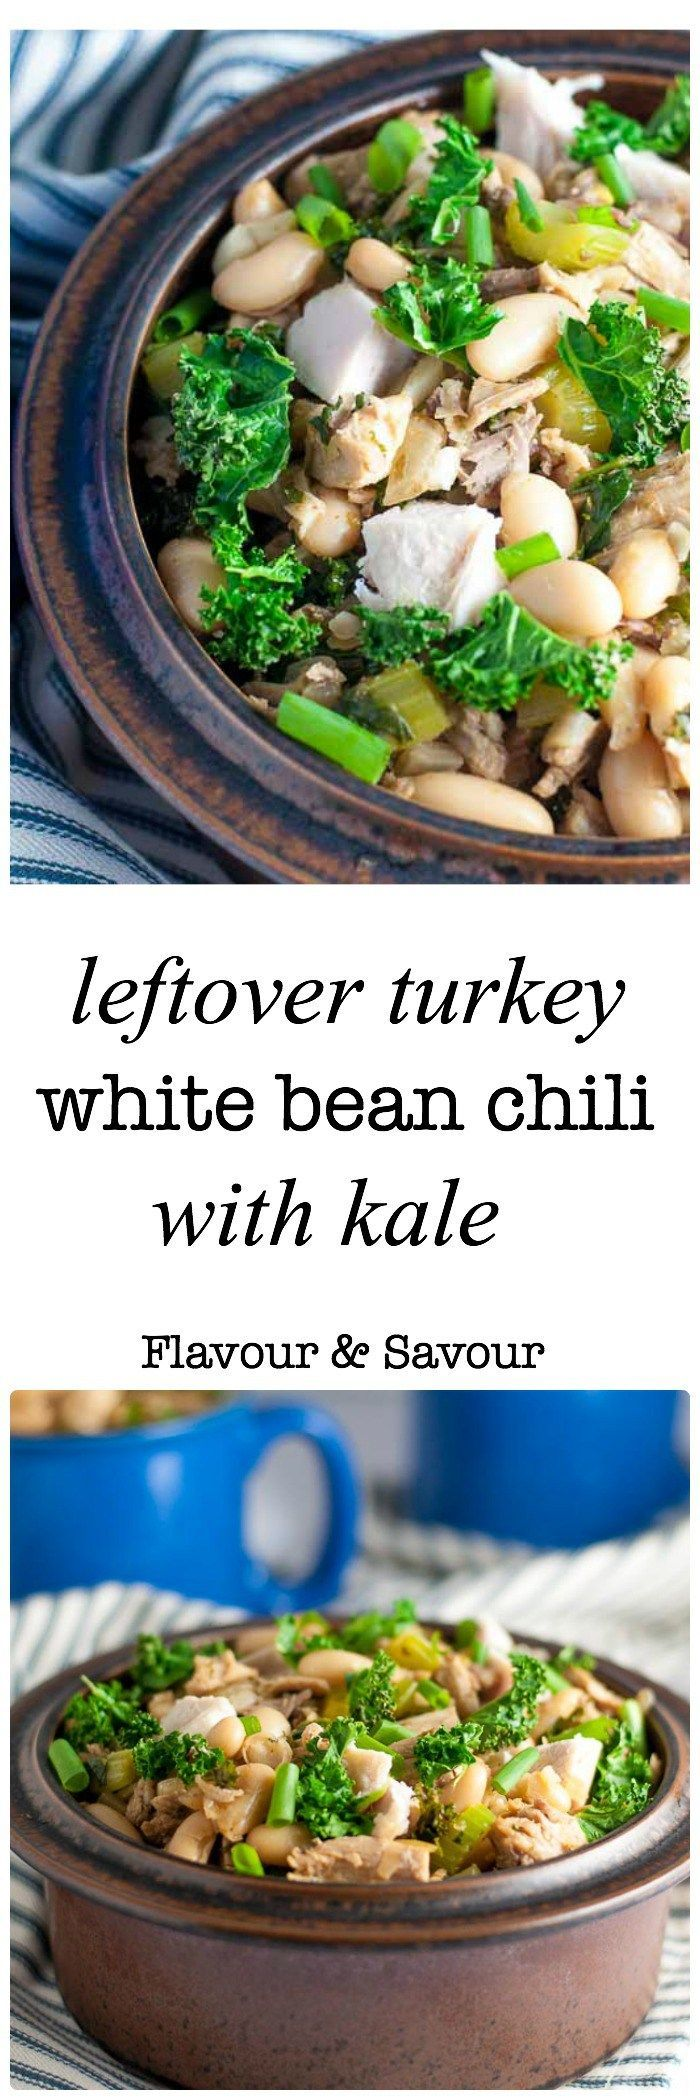 What to do with leftover turkey? Make this Easy Leftover Turkey White Bean Chili. Made with leftover turkey, white kidney beans (cannellini), and kale.